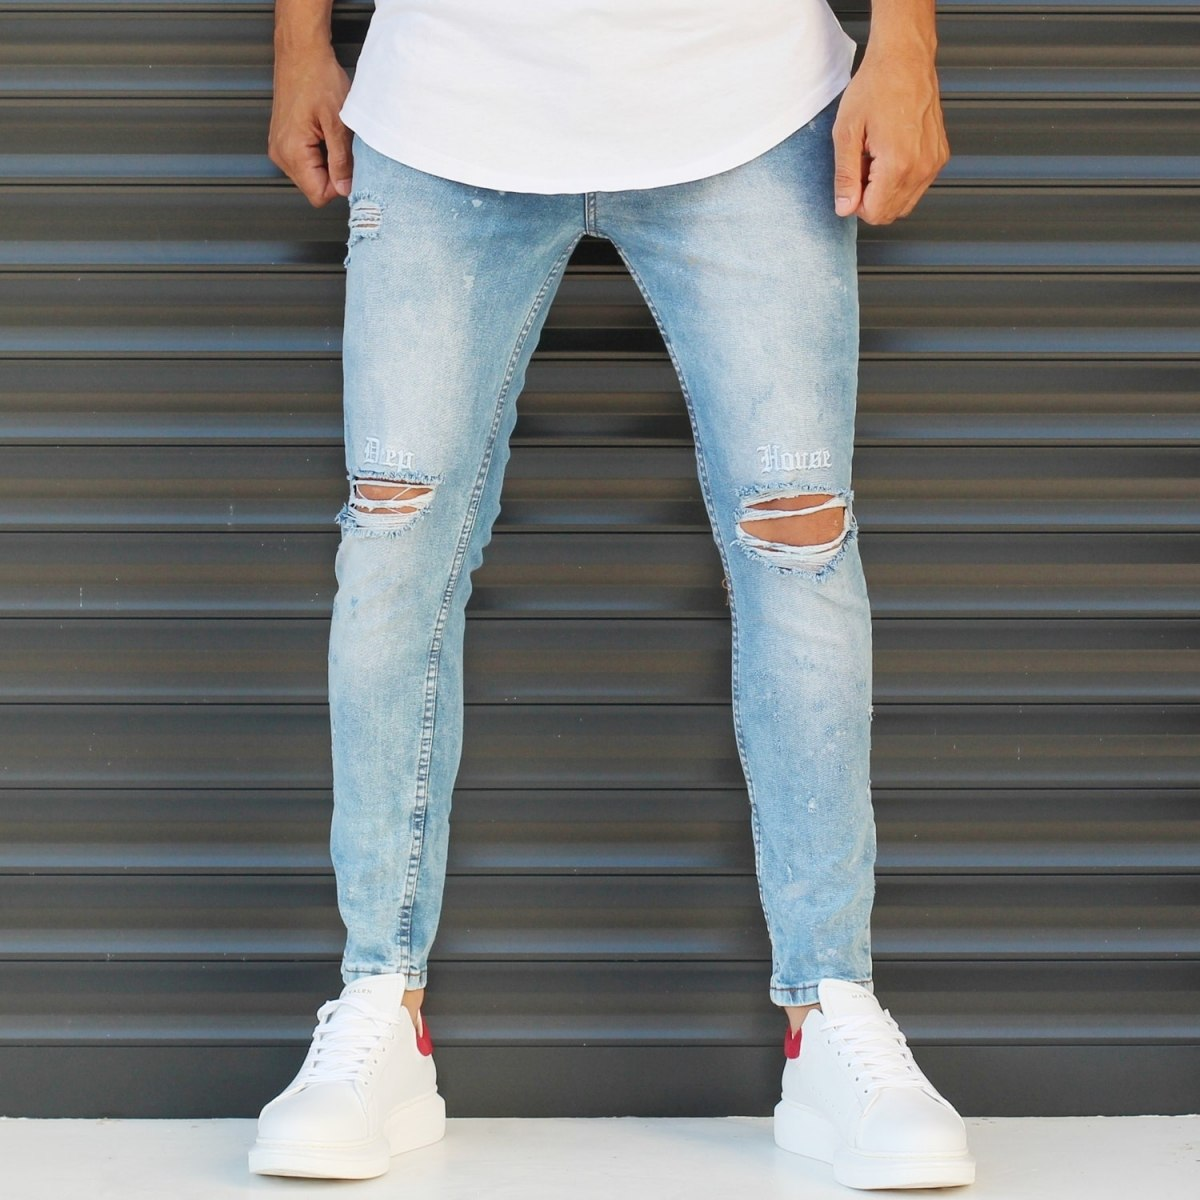 Men's Basic Narrow Leg Sport Jeans With Knee Rips Blue